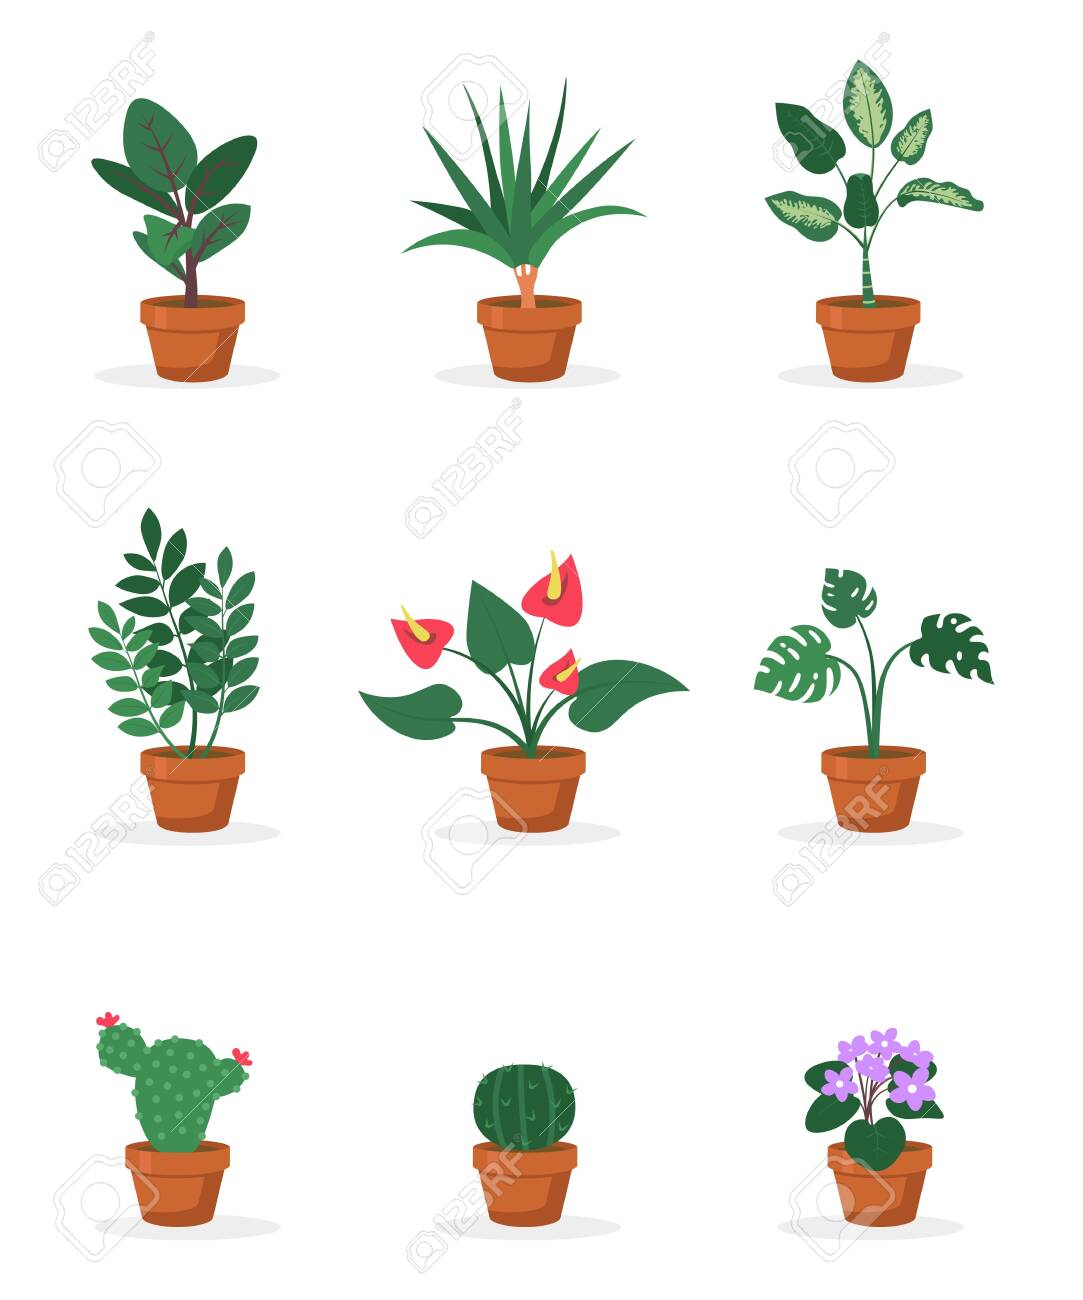 House Plants In Pots Flat Vector Illustrations Set Royalty Free Cliparts Vectors And Stock Illustration Image 130530142